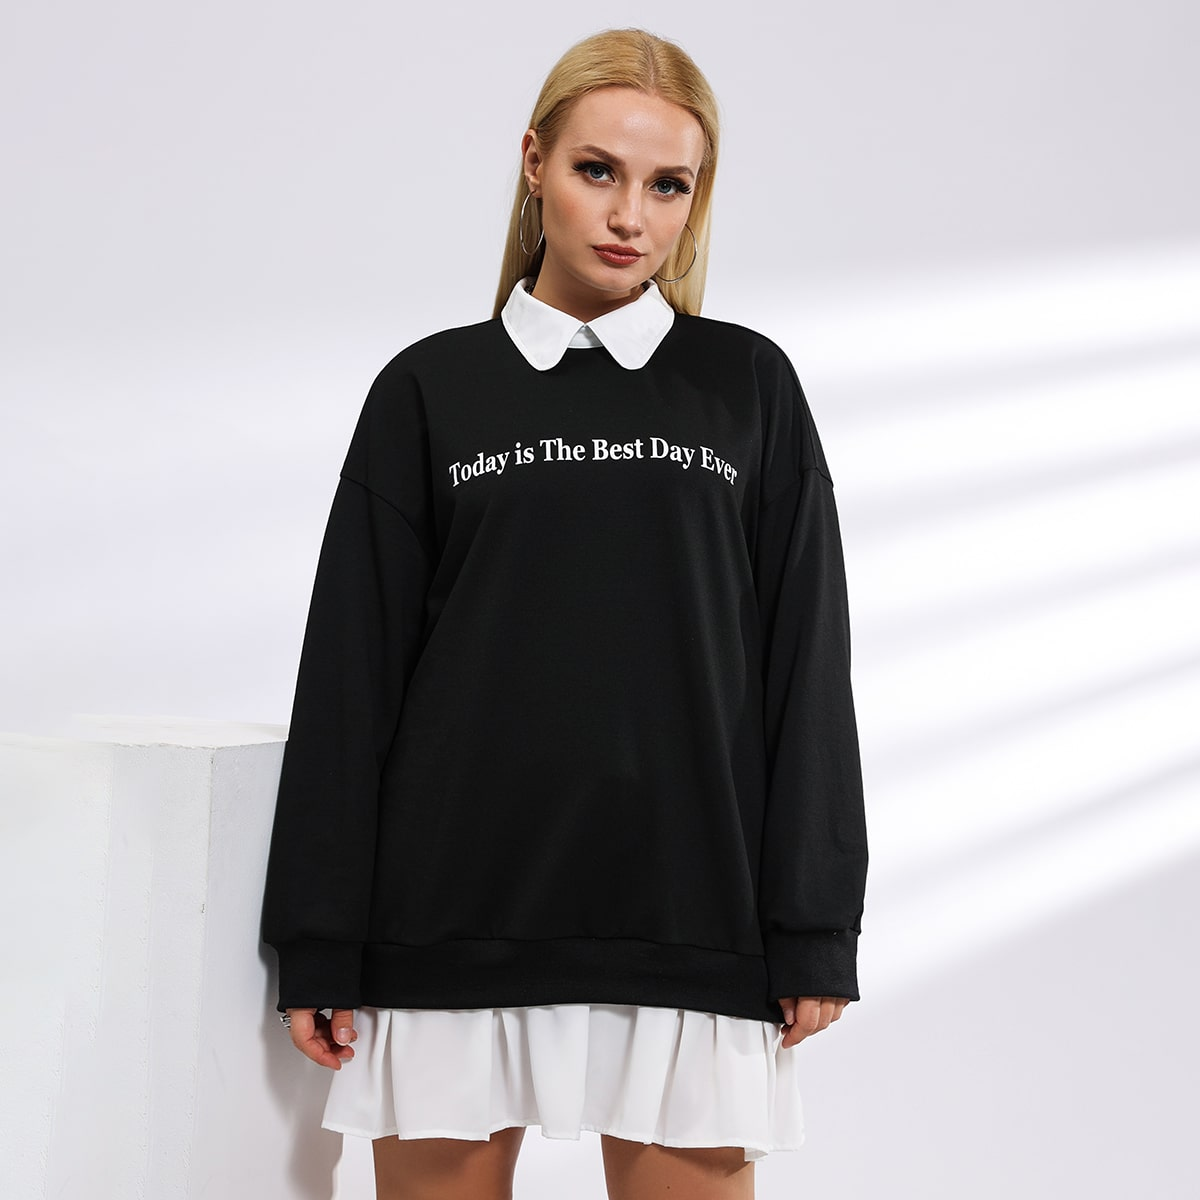 Plus Letter Graphic Collar Sweatshirt, SHEIN  - buy with discount